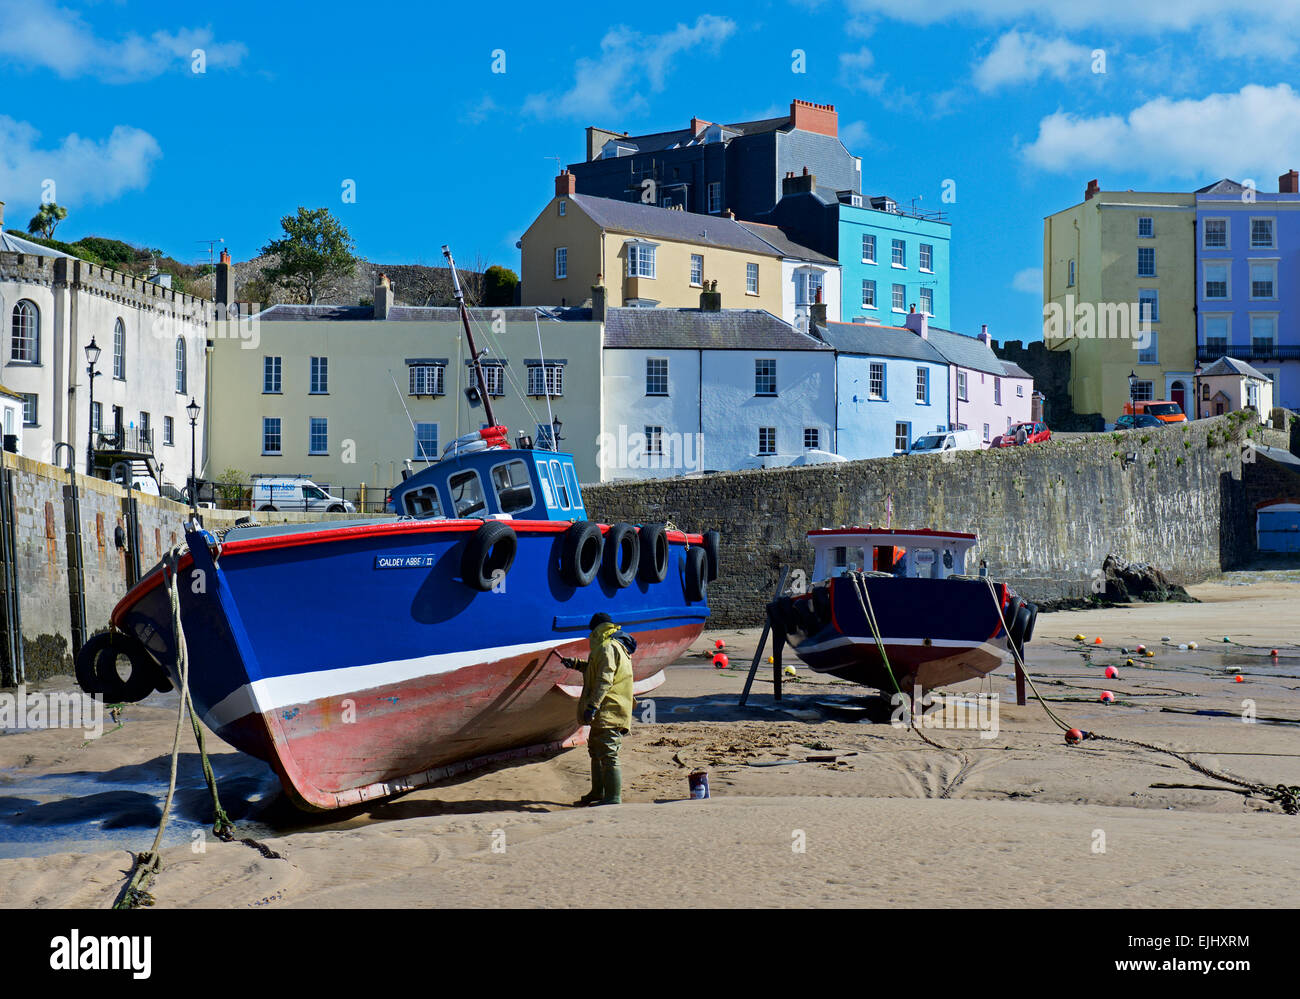 man-painting-fishing-boat-on-the-beach-in-tenby-harbour-pembrokeshire-EJHXRM.jpg